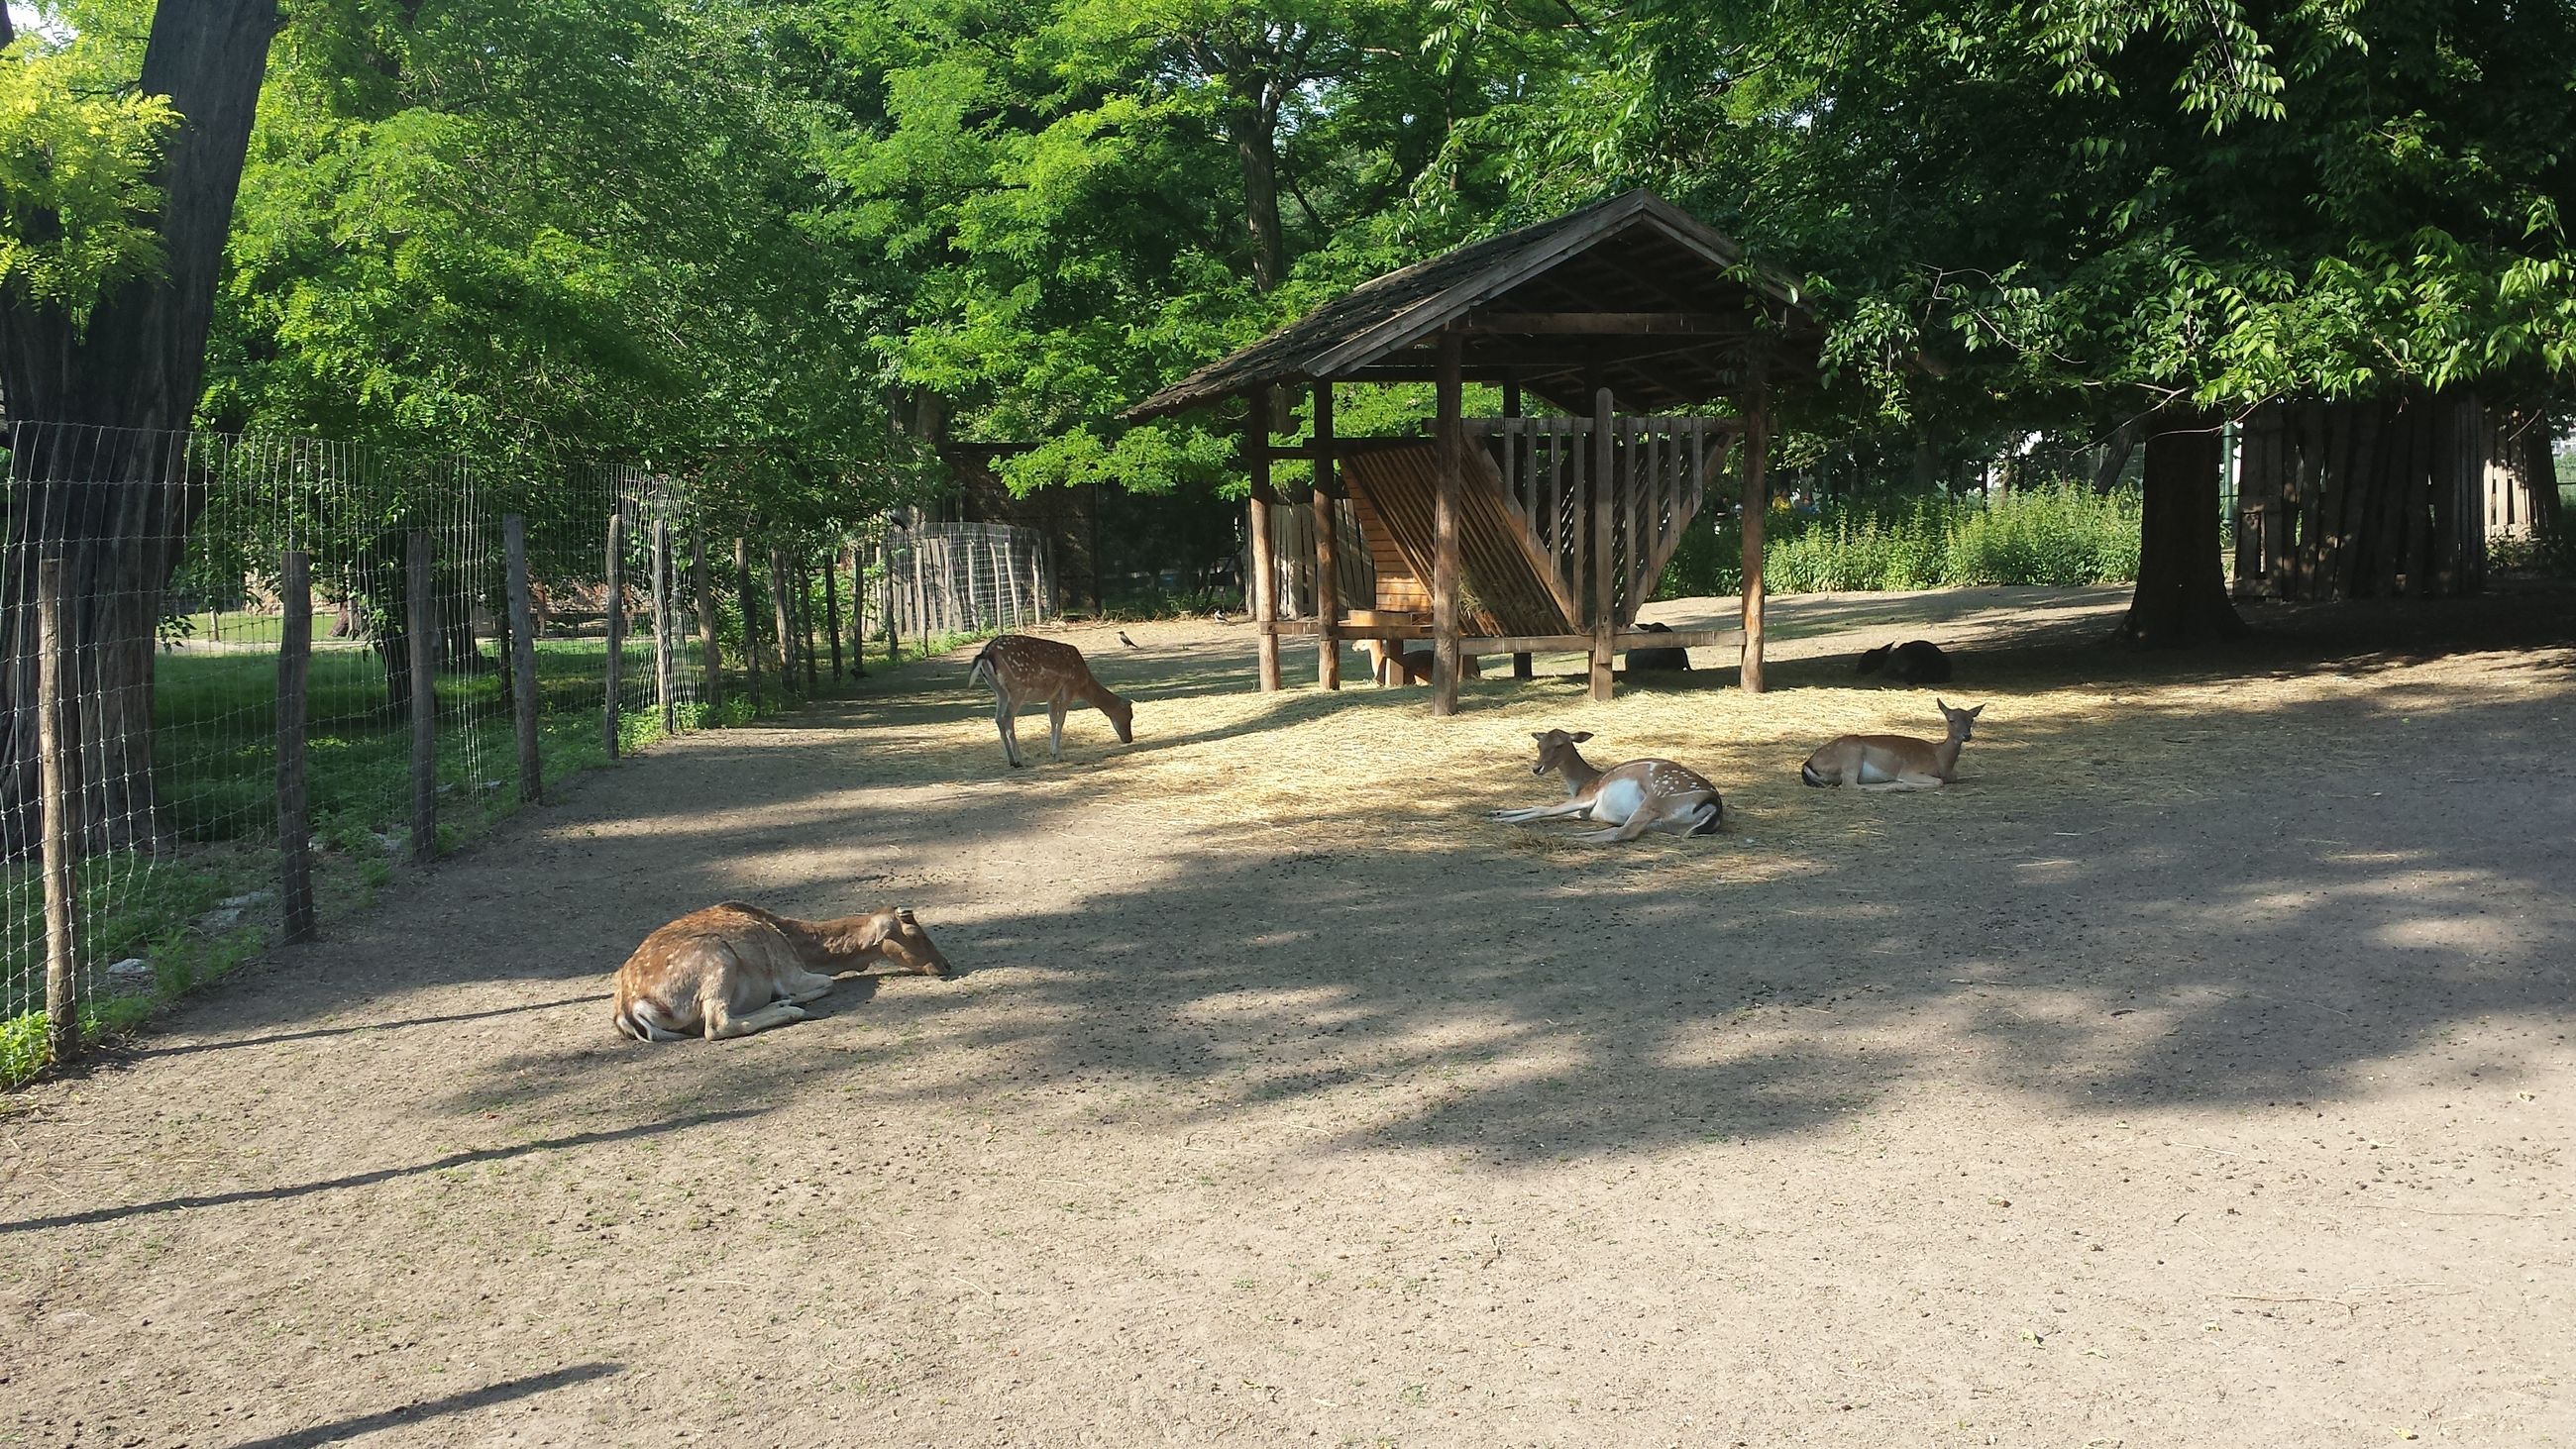 animal themes, tree, mammal, built structure, domestic animals, one animal, architecture, building exterior, wildlife, animals in the wild, sunlight, park - man made space, day, outdoors, nature, pets, house, shadow, dog, two animals